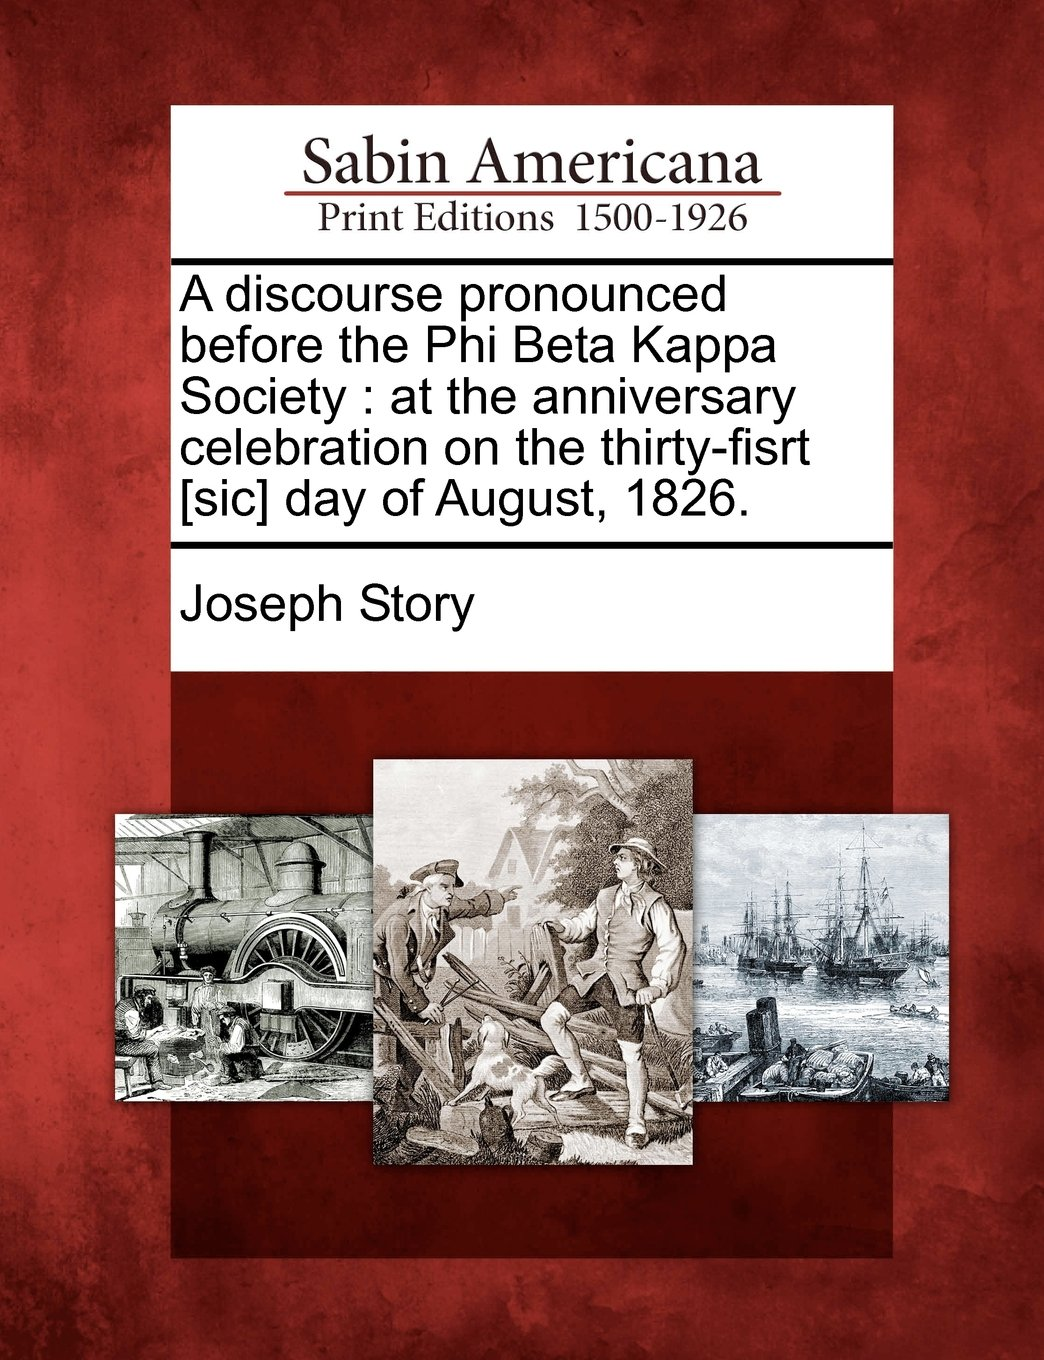 Read Online A discourse pronounced before the Phi Beta Kappa Society: at the anniversary celebration on the thirty-fisrt [sic] day of August, 1826. pdf